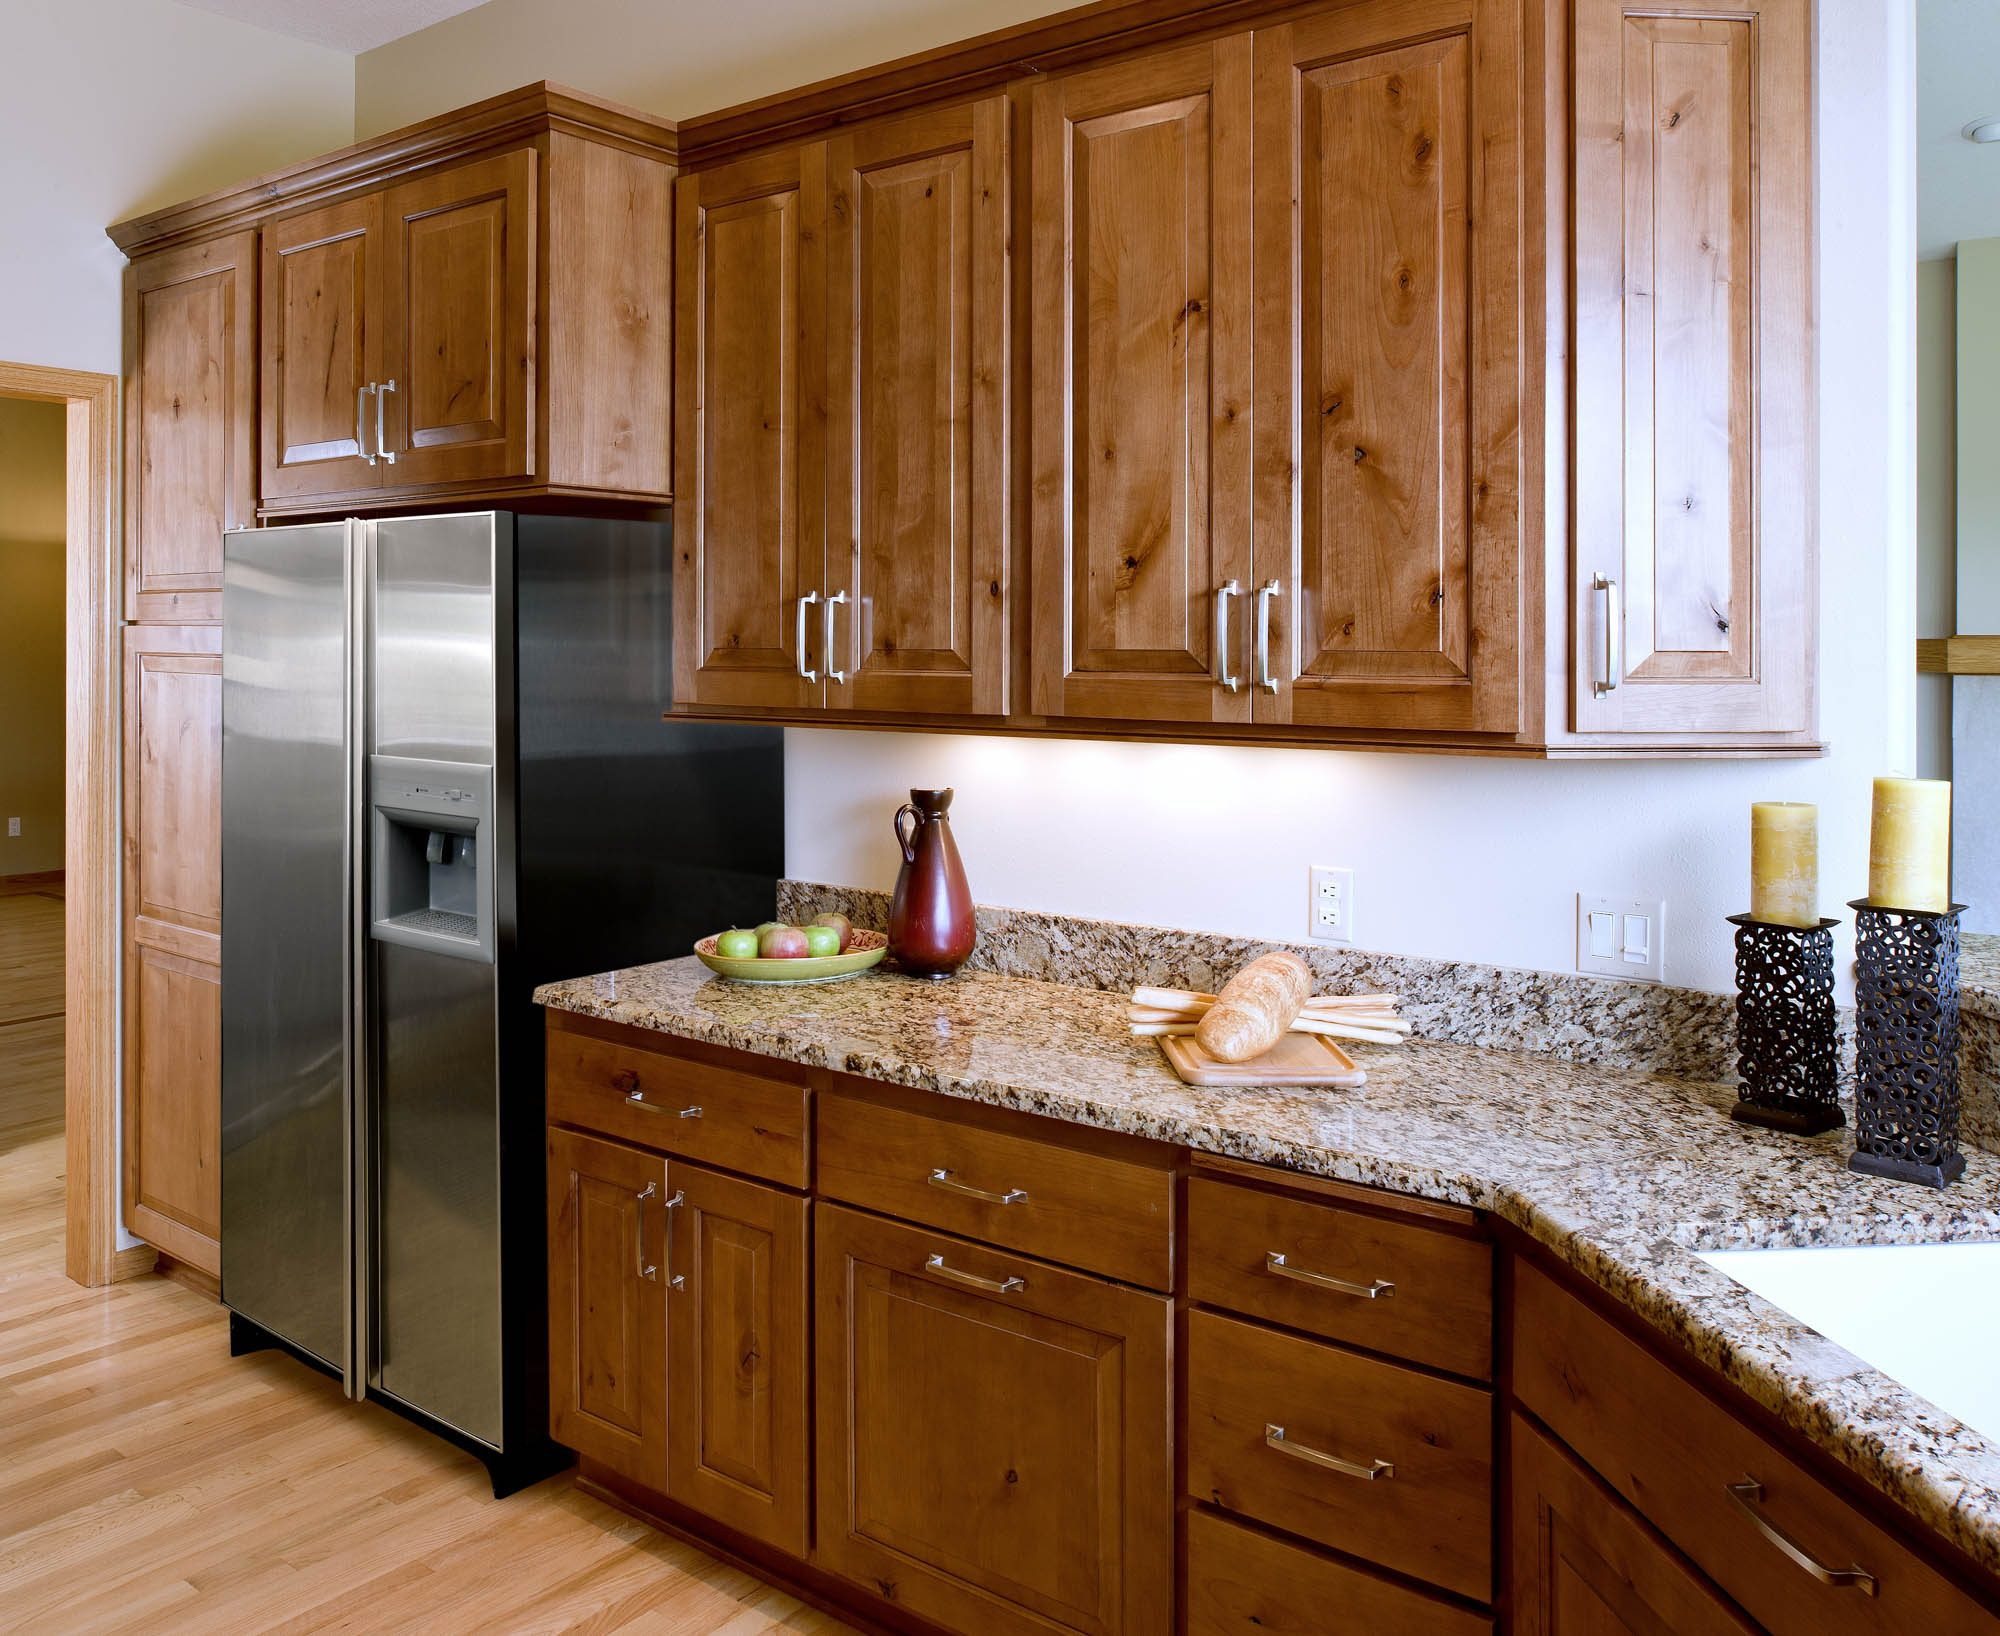 Renew | Stained kitchen cabinets in Nutmeg with Ebony Glaze by Showplace Cabinetry - view 4